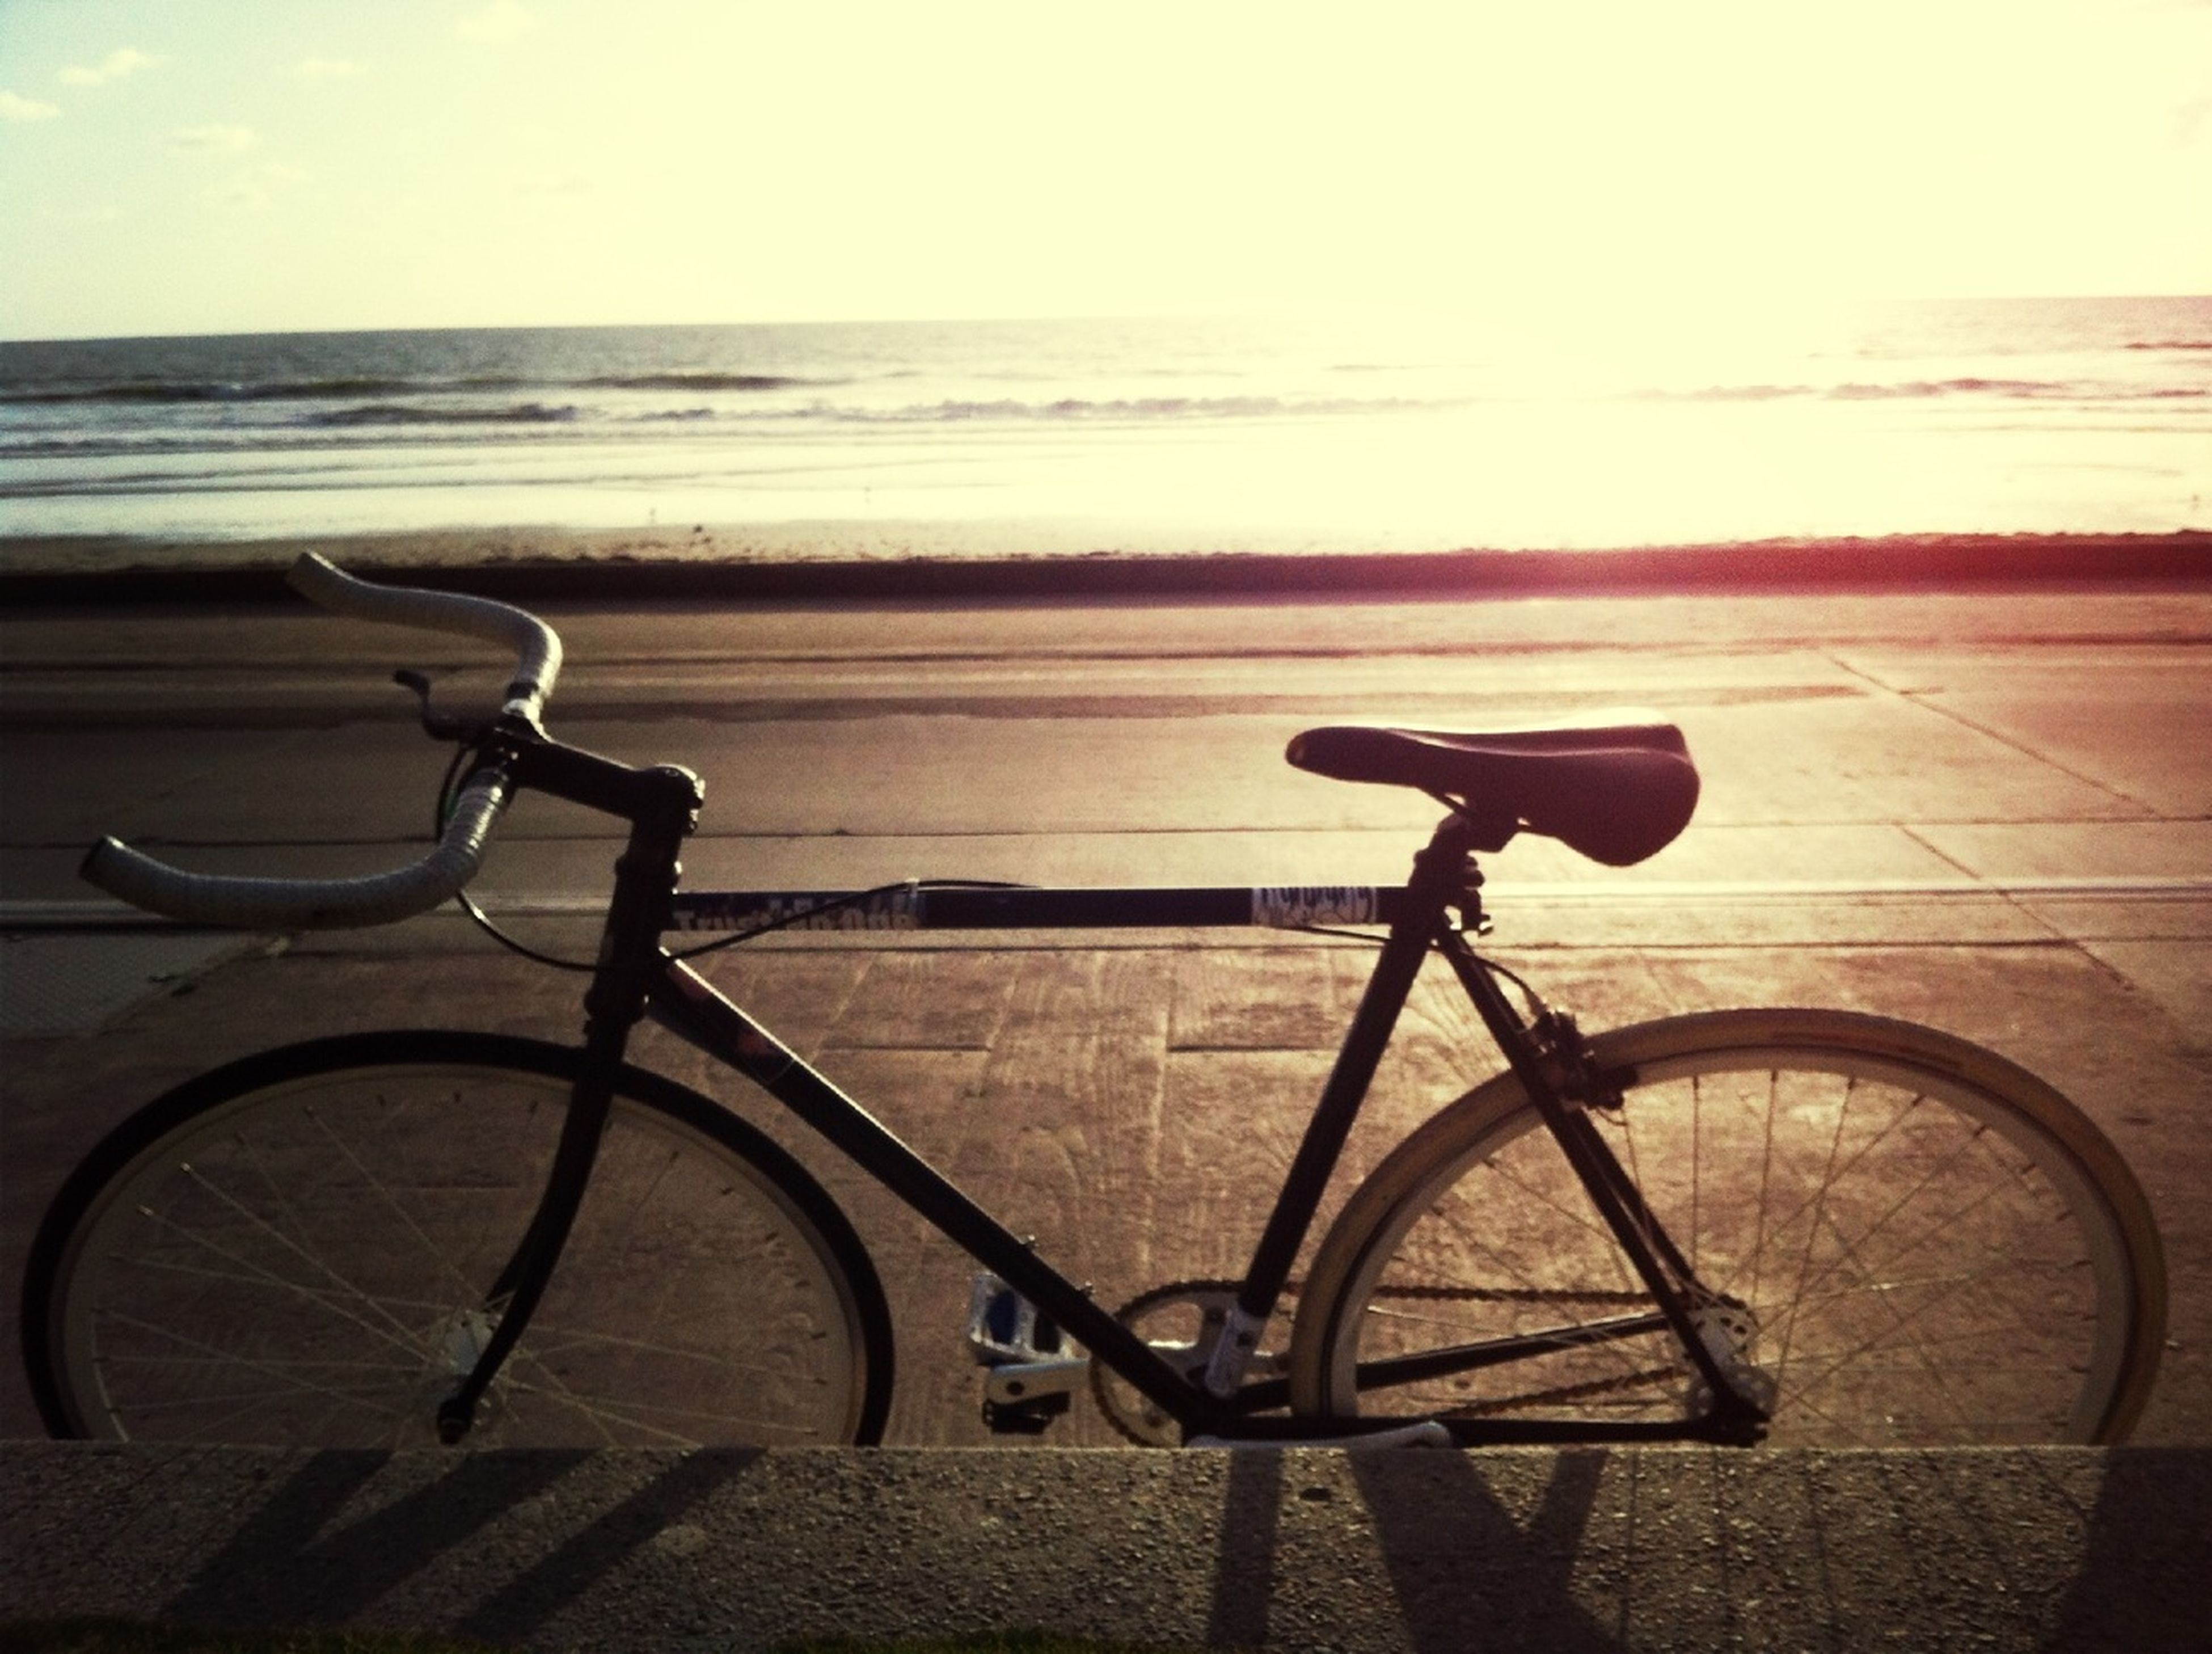 sea, horizon over water, water, bicycle, sky, tranquility, absence, railing, tranquil scene, sunlight, beauty in nature, beach, scenics, sunset, nature, empty, parking, transportation, no people, shadow